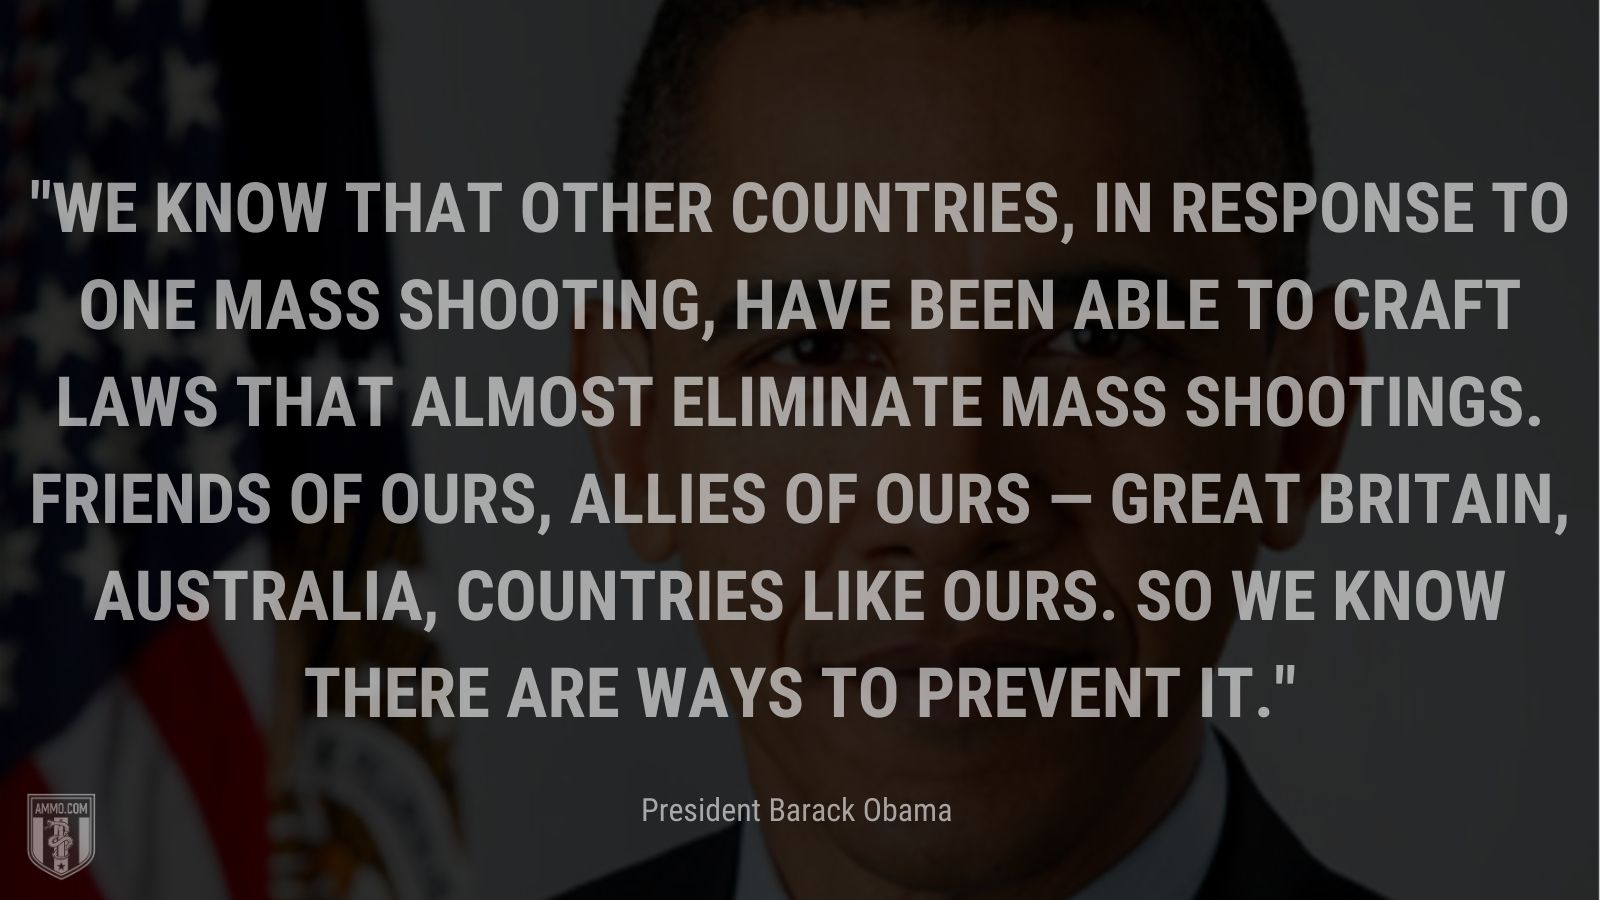 """""""We know that other countries, in response to one mass shooting, have been able to craft laws that almost eliminate mass shootings. Friends of ours, allies of ours — Great Britain, Australia, countries like ours. So we know there are ways to prevent it."""" -President Barack Obama"""